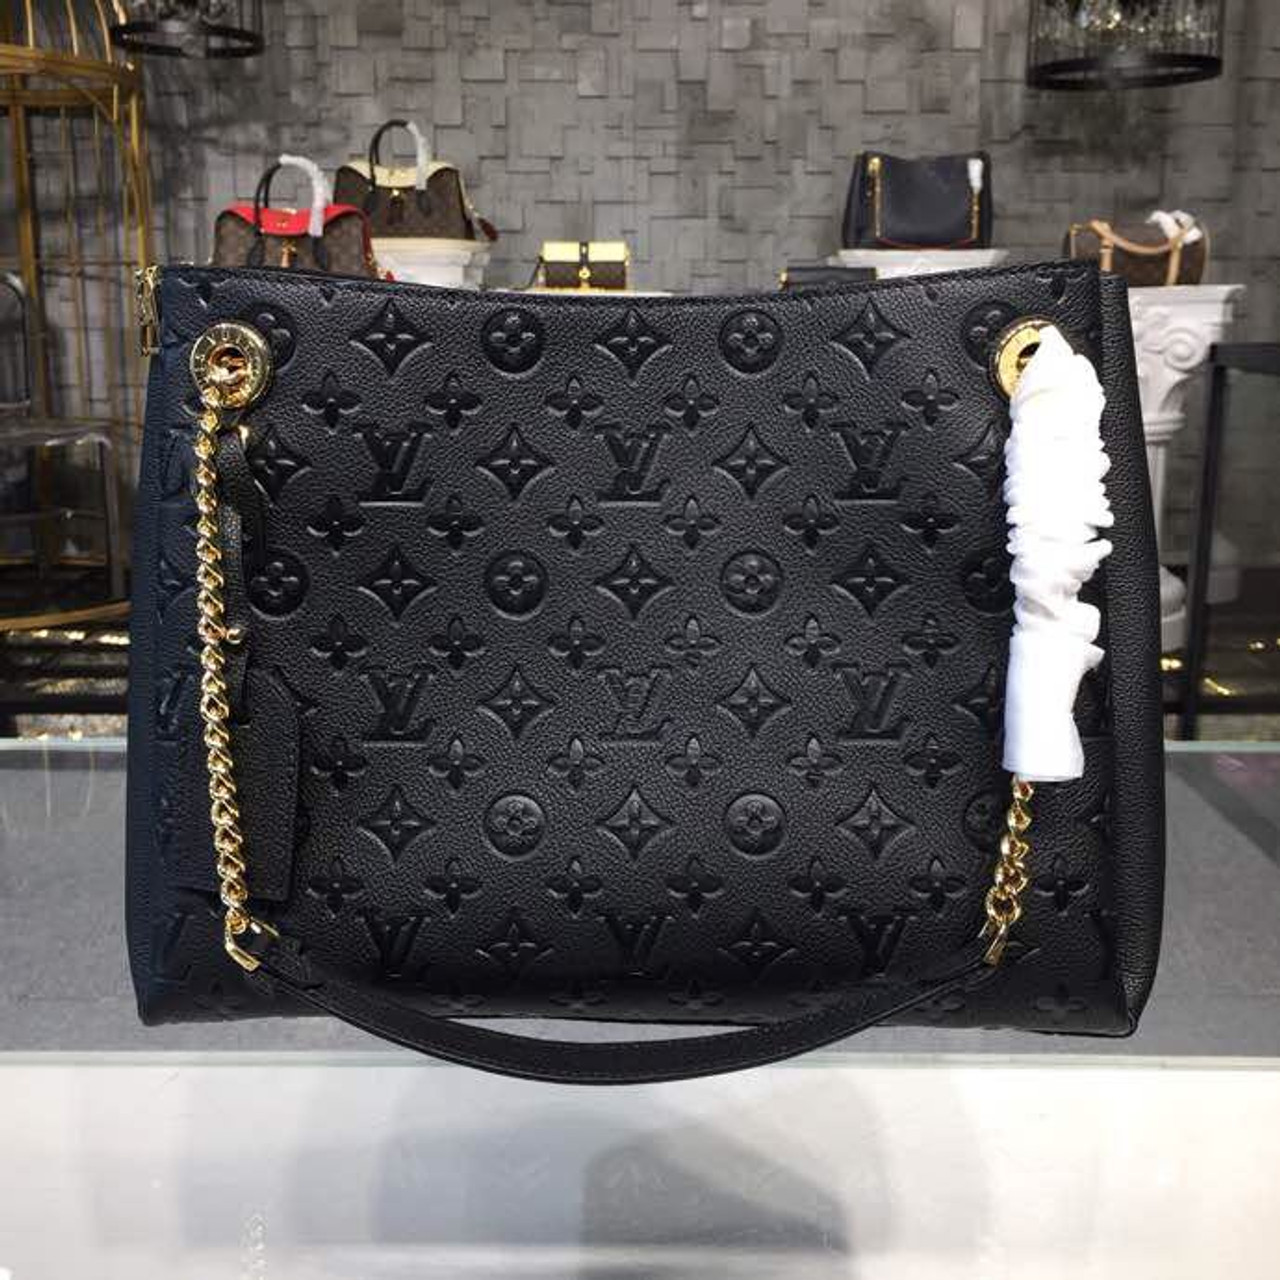 2d4a251a03 Louis Vuitton Surene MM Chain Tote Handbag Monogram Empreinte Canvas  Fall/Winter 2018 Collection M43758, Noir